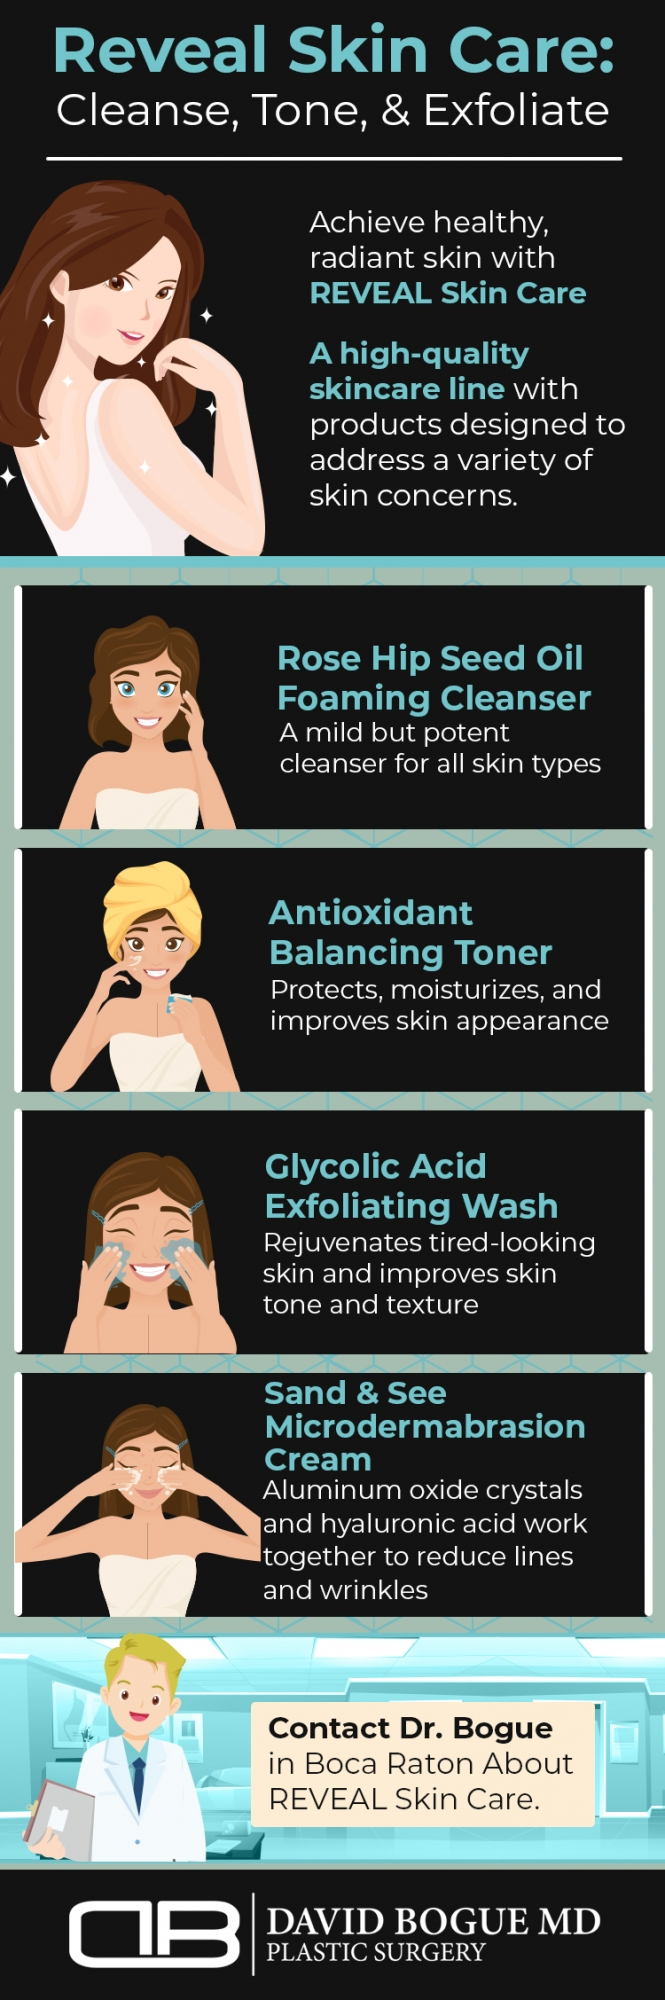 REVEAL Skin Care Line products listed in an infographic for Boca Raton plastic surgeon